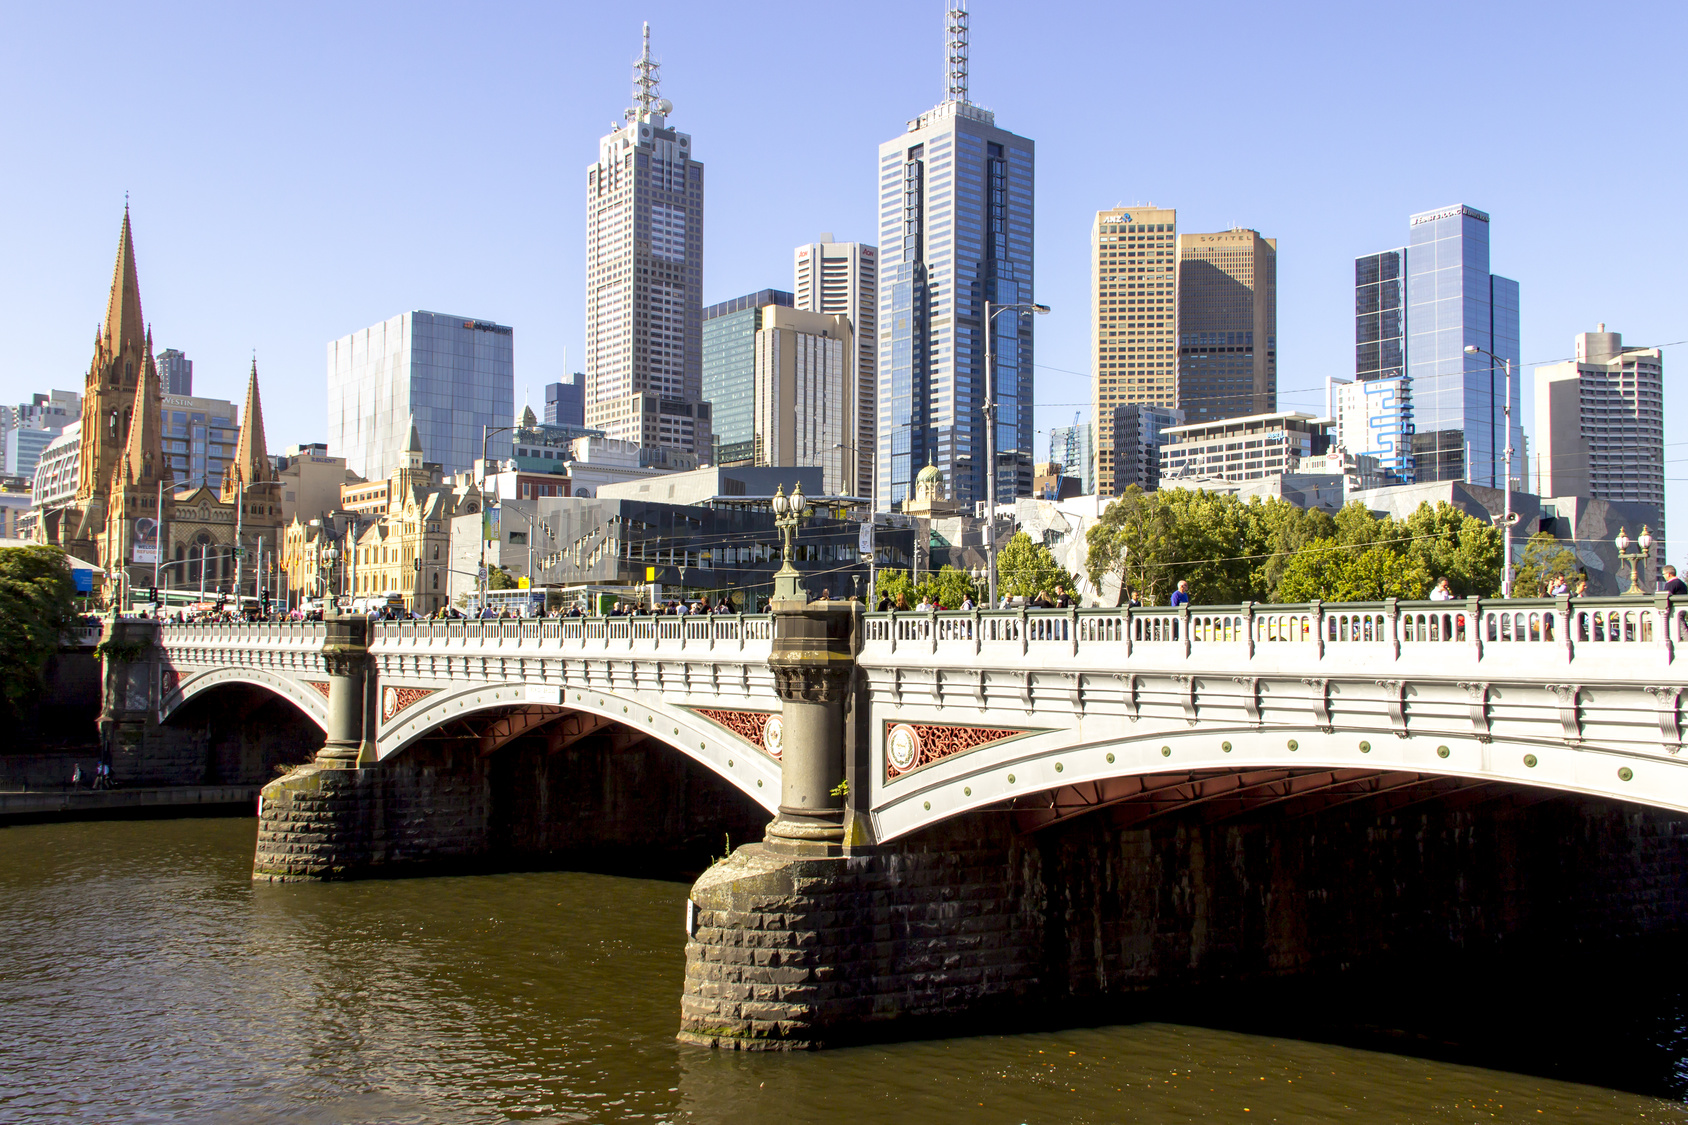 Prince bridge scenery city of Melbourne on modern and vintage building style